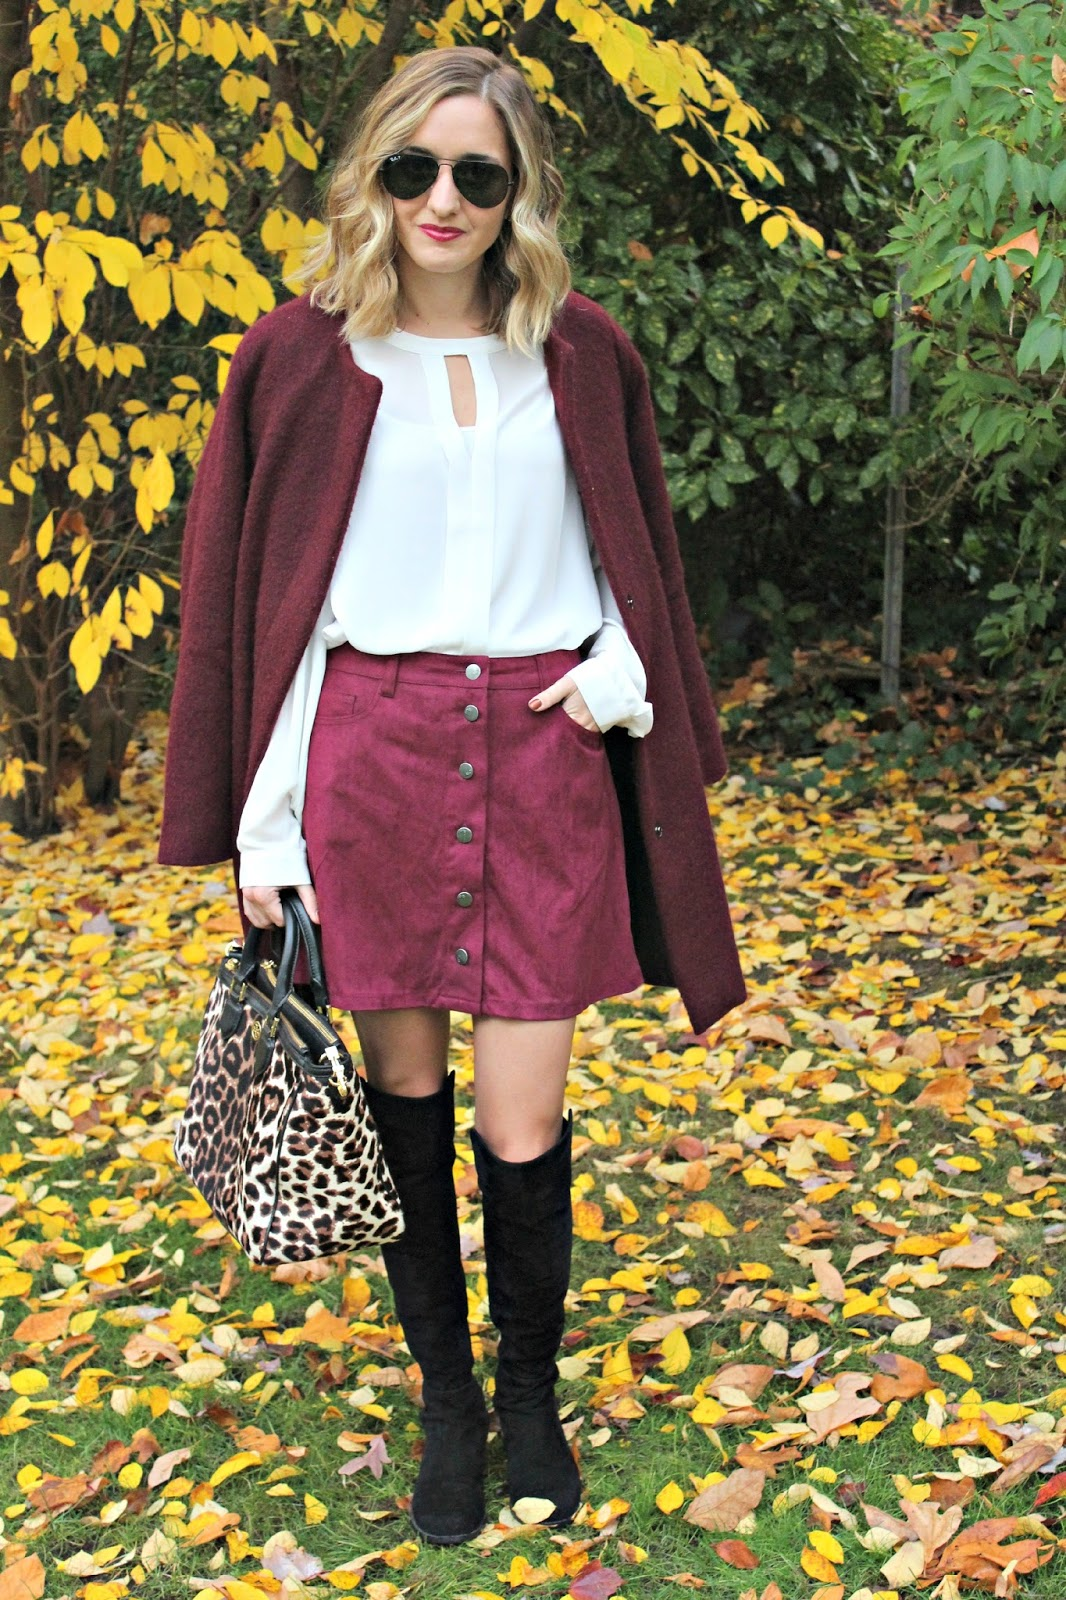 oxblood outfit